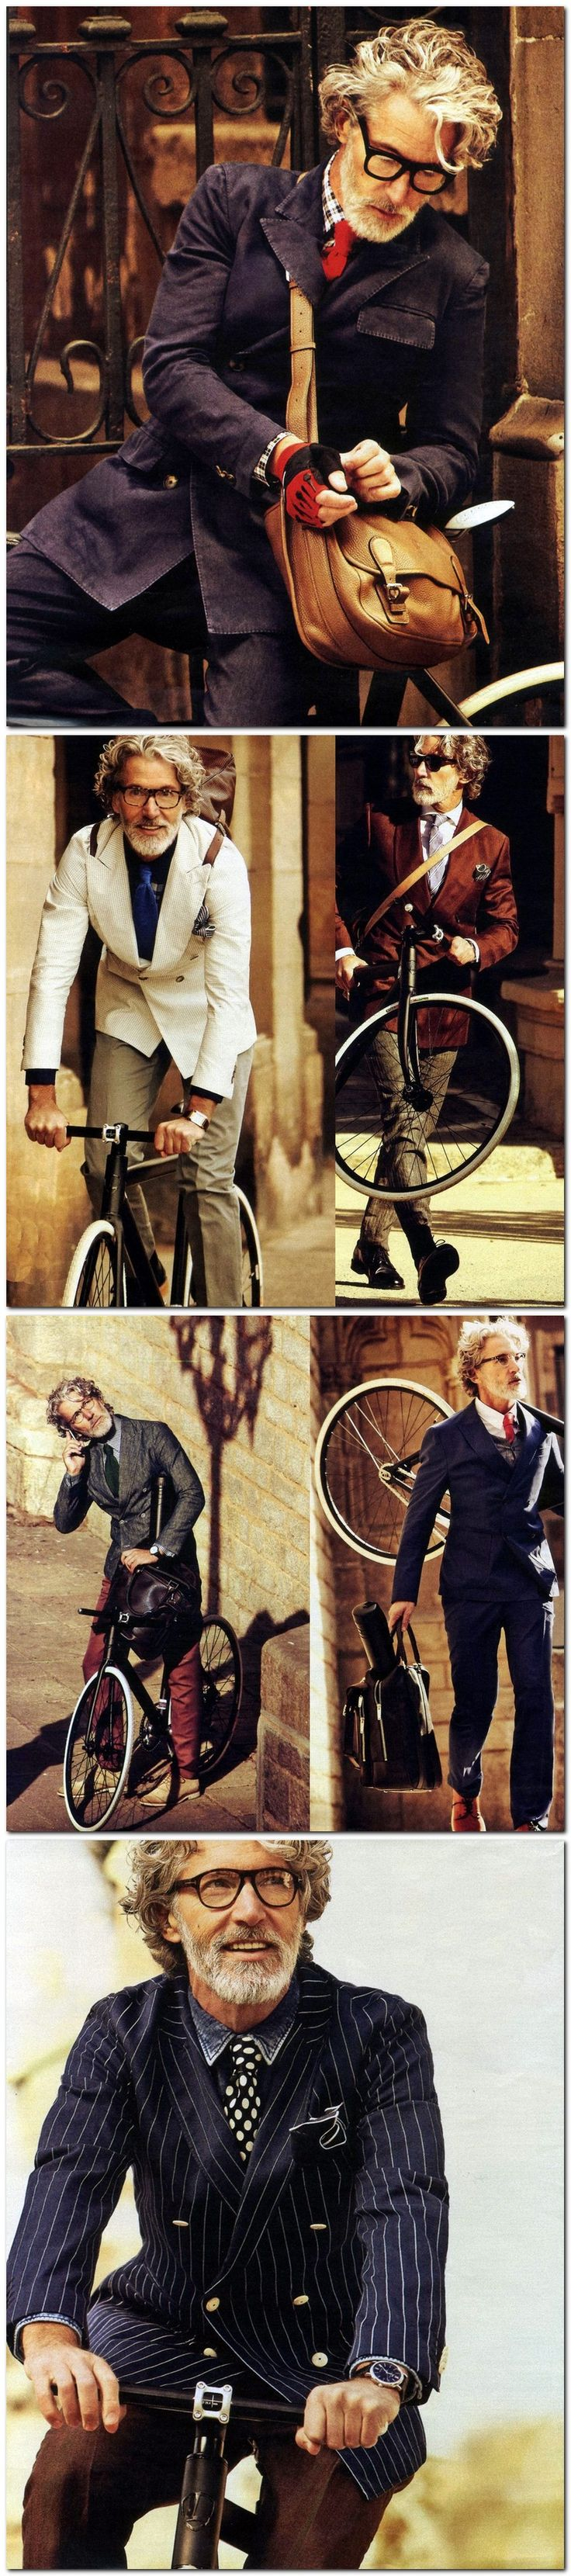 The Biking View–Photographer Sergi Pons (Motif Management) and stylist Miguel Arnau (Motif Management) reunite with Success model Aiden Shaw for another El Pais story. Biking around cobble streets, Aiden is business smart, clad in light suiting separates from Valentino, Tommy Hilfiger and Giorgio Armani, amongst other labels.: